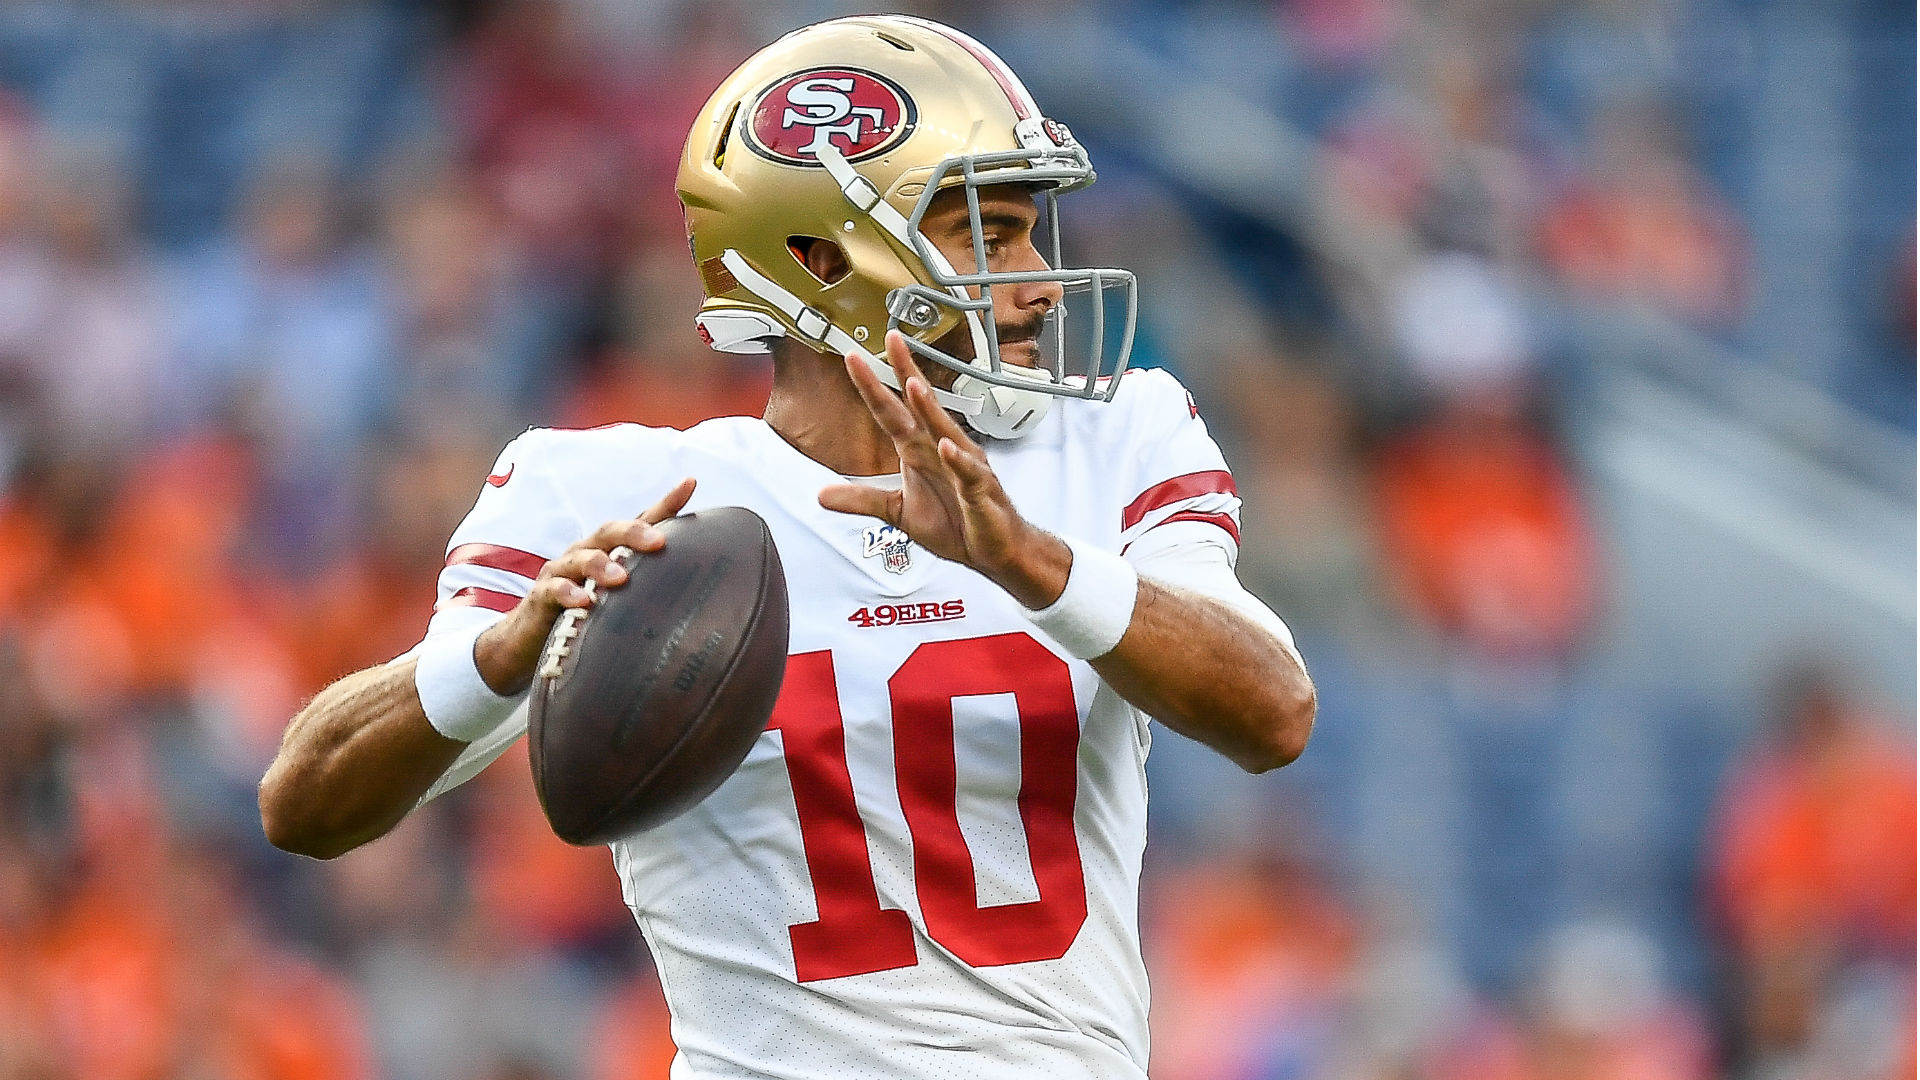 Playing for the first time in almost a year, Jimmy Garoppolo struggled against the Denver Broncos in Monday's preseason game.